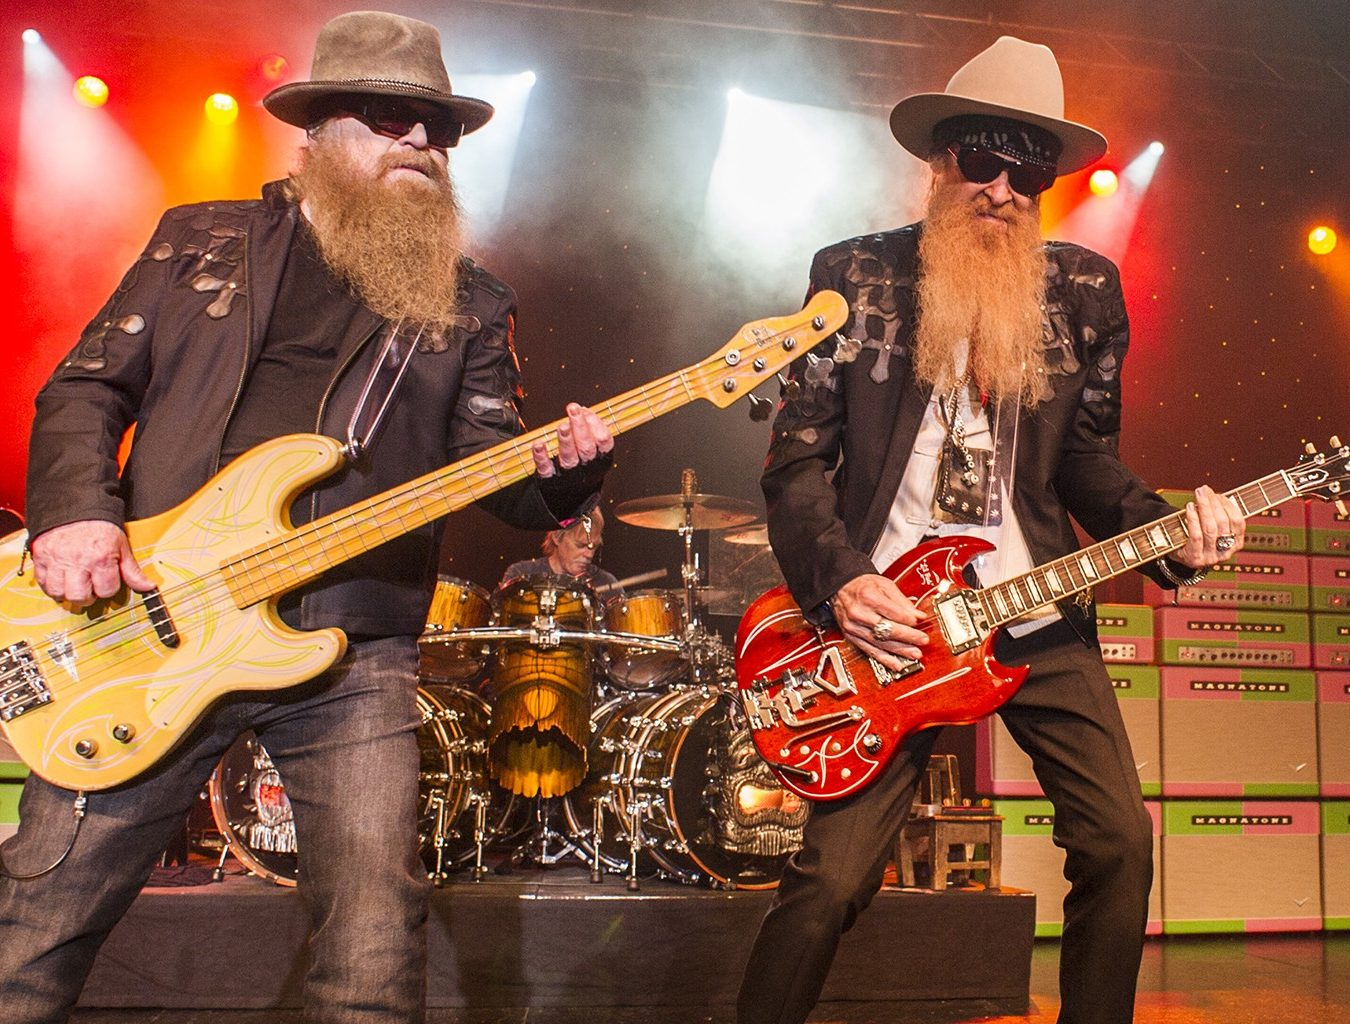 zz top performance 2016 billboard 1548 compressed e1610379399901 10 Sharp-Dressed Facts About ZZ Top